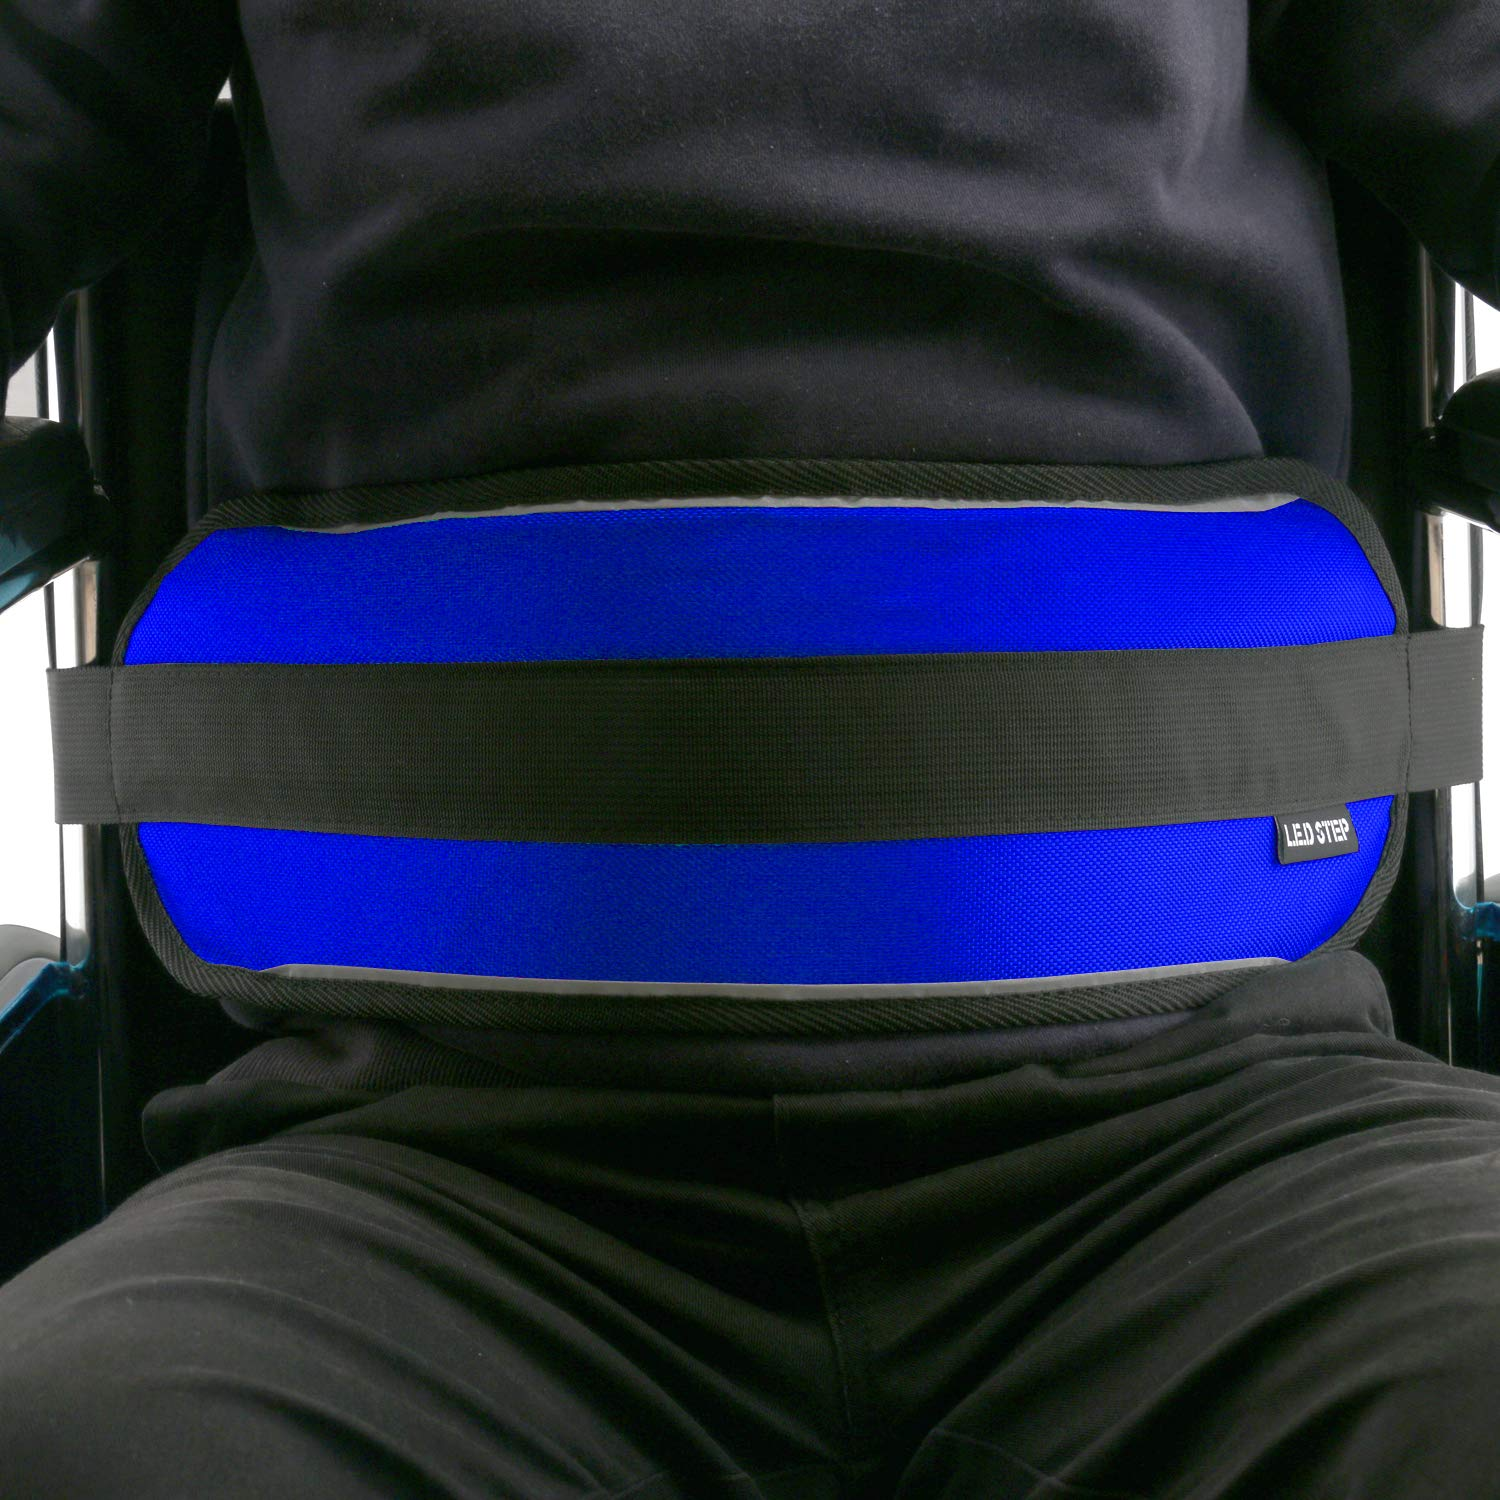 Wheelchair Seat Belt Restraint Systems Chest Cross Medical Restraints Harness Chair Adjustable Strap Patients Cares Elderly Safety (Blue)